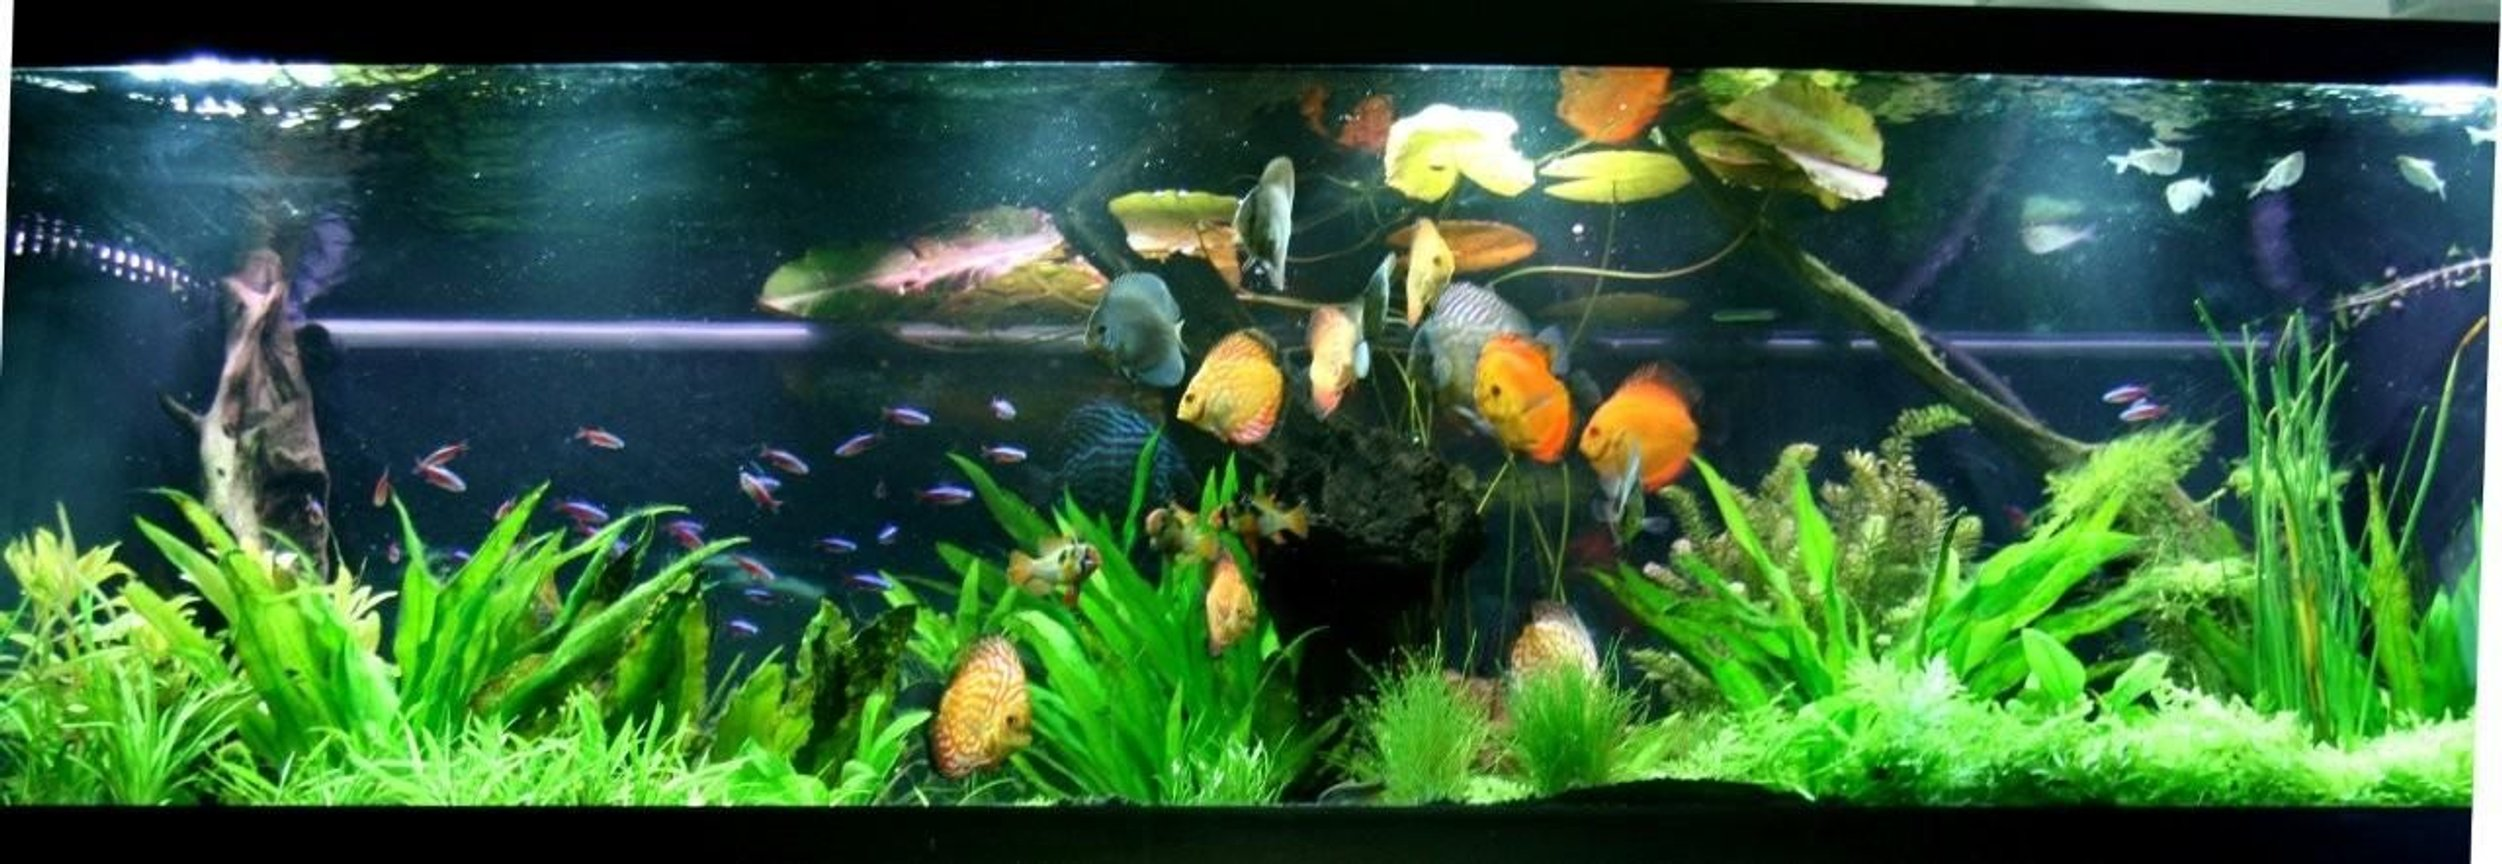 130 gallons planted tank (mostly live plants and fish) - The display tank.